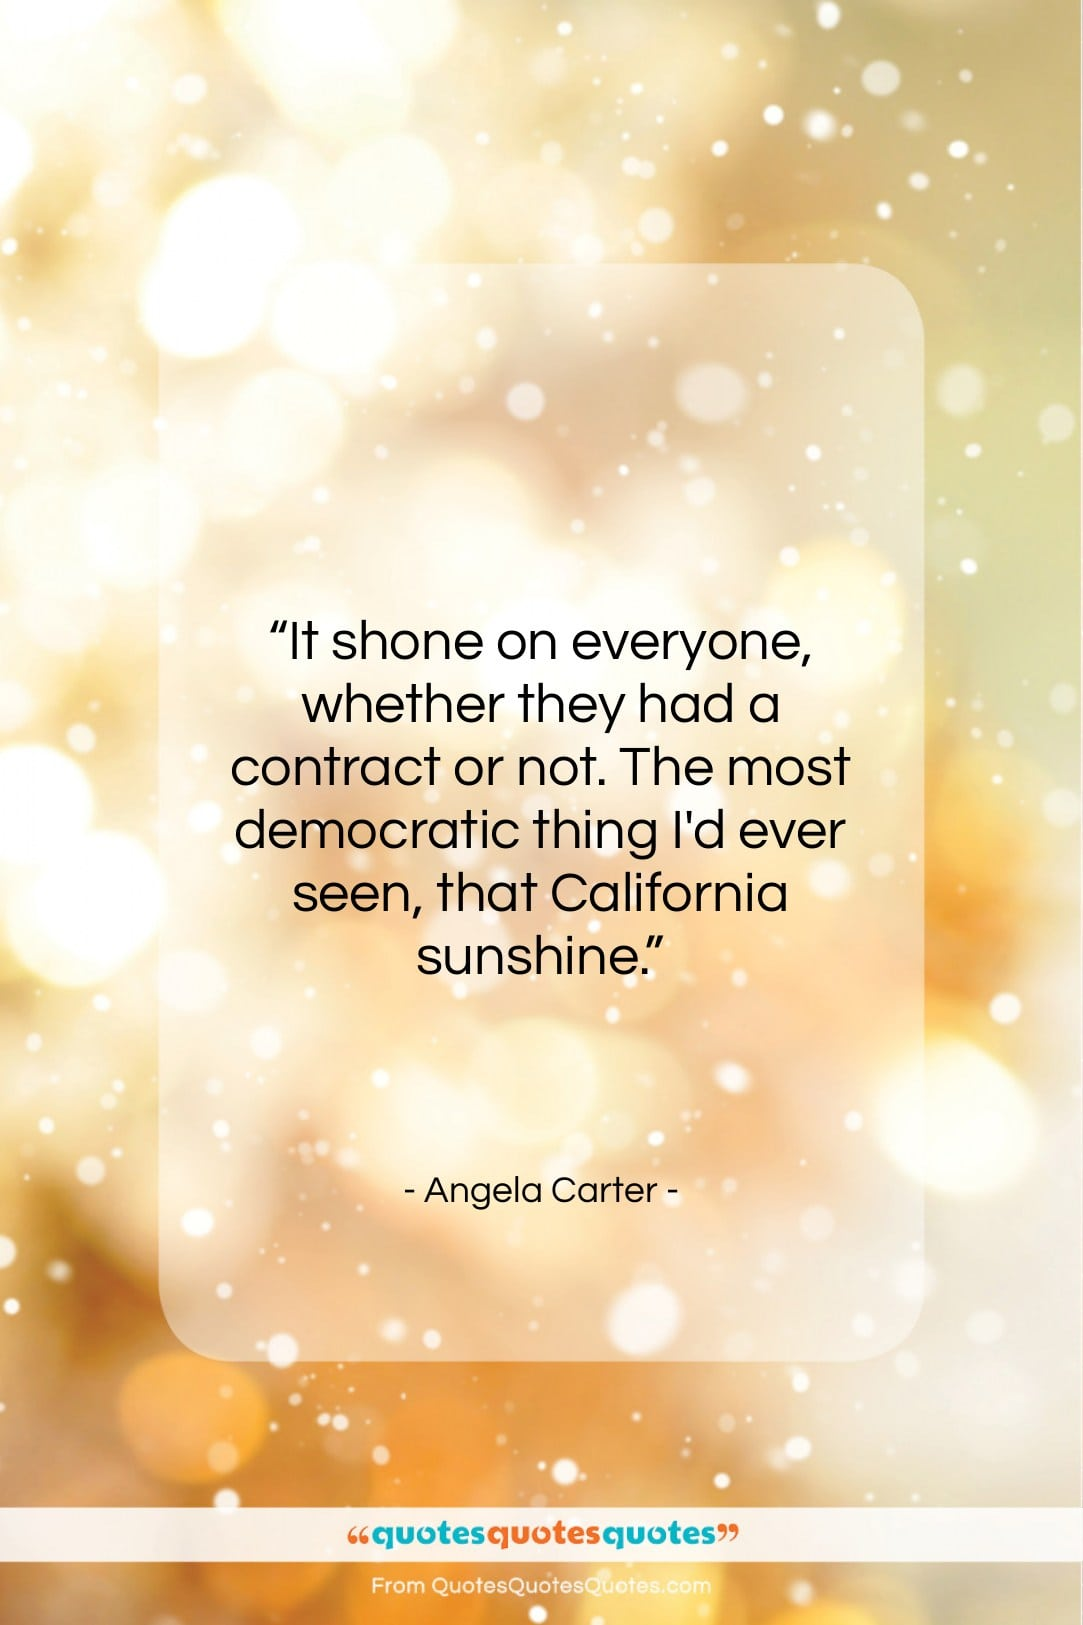 """Angela Carter quote: """"It shone on everyone, whether they had…""""- at QuotesQuotesQuotes.com"""